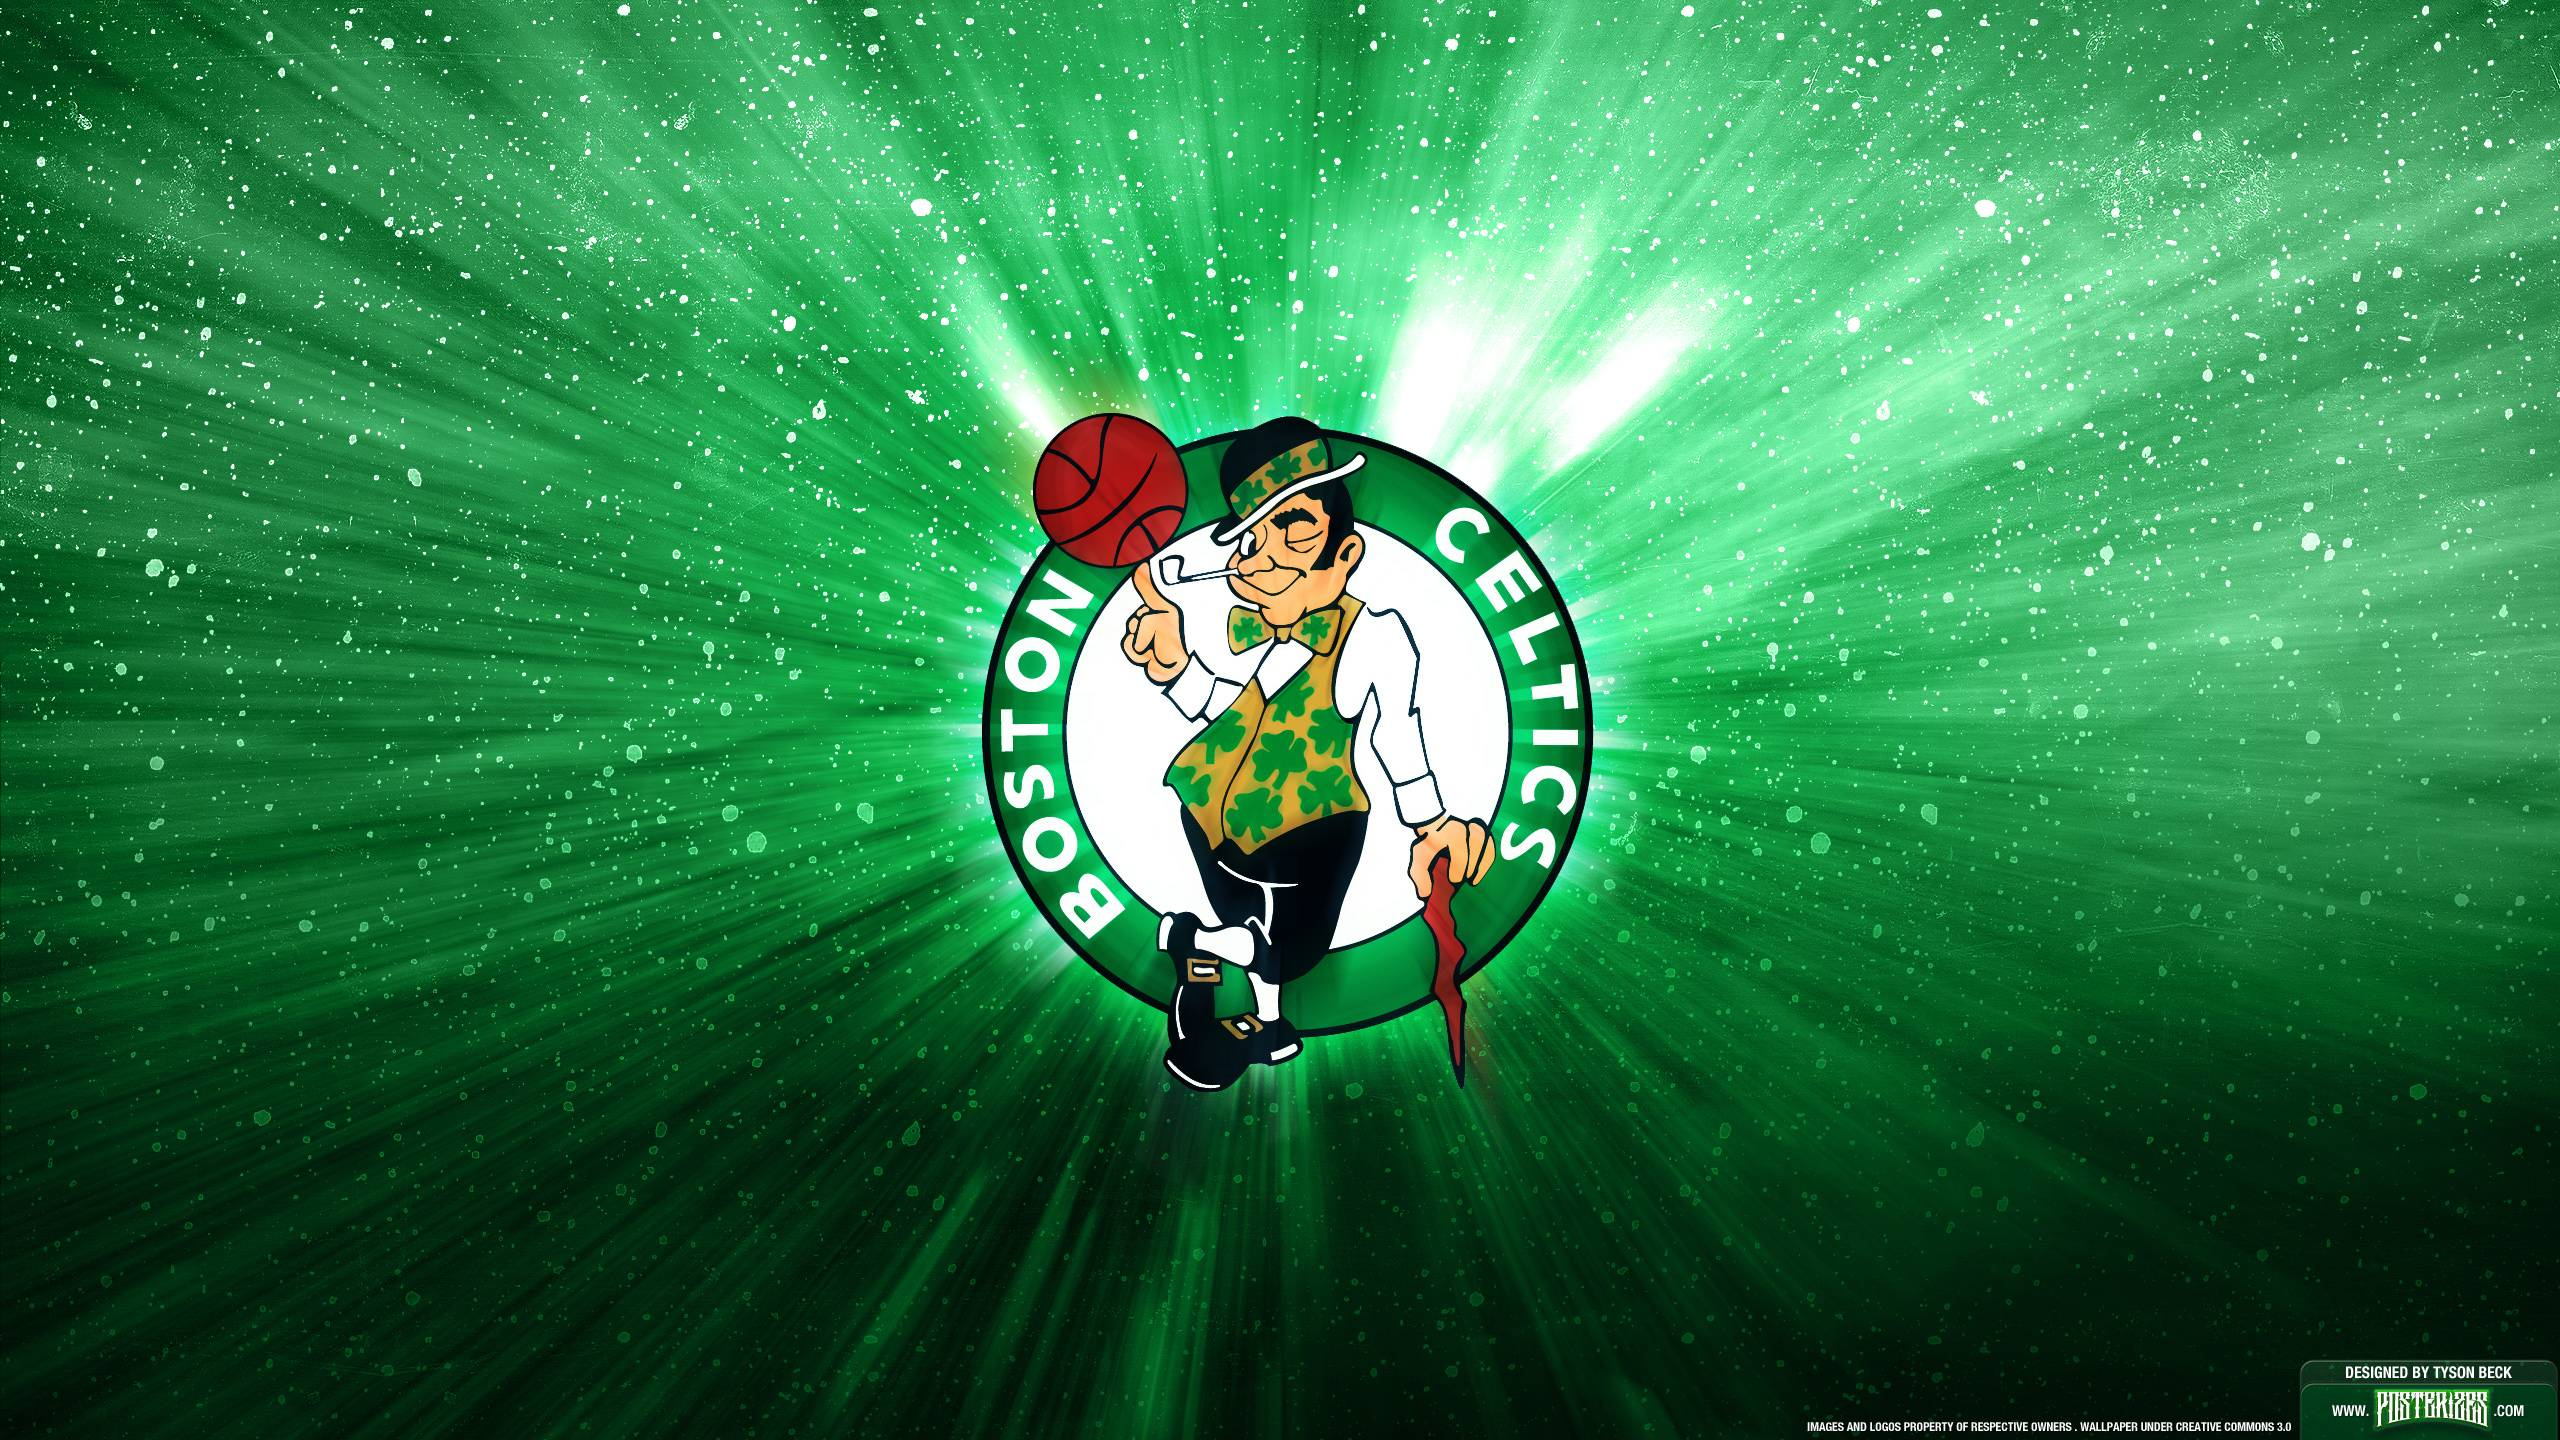 Boston Celtics | Posterizes | NBA Wallpapers & Basketball Designs .